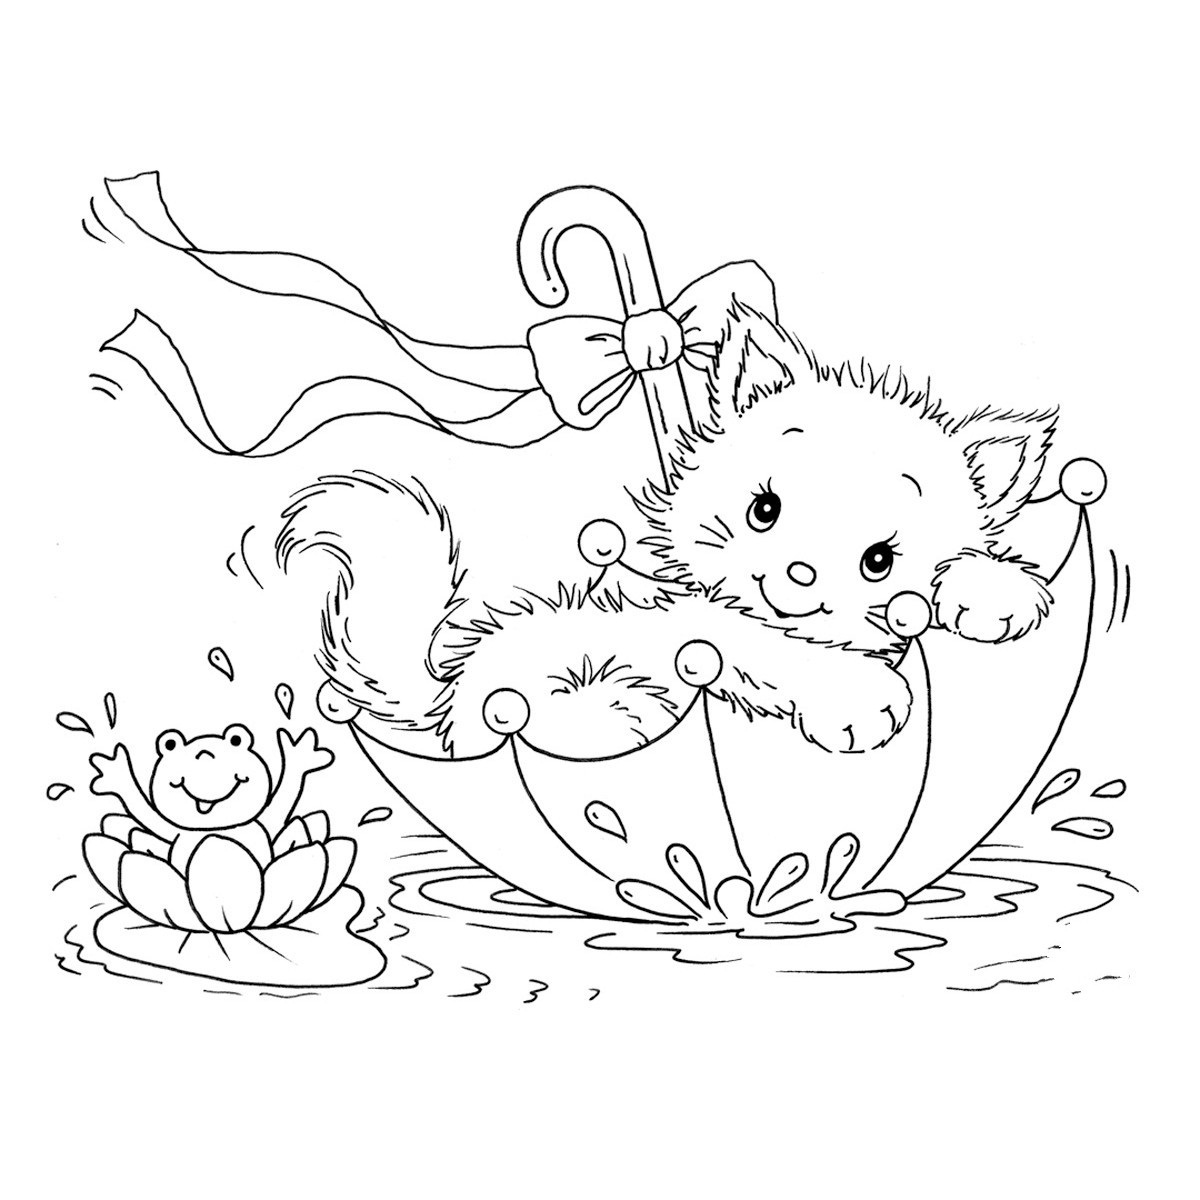 cat colouring in pages free printable cat coloring pages for kids pages colouring in cat